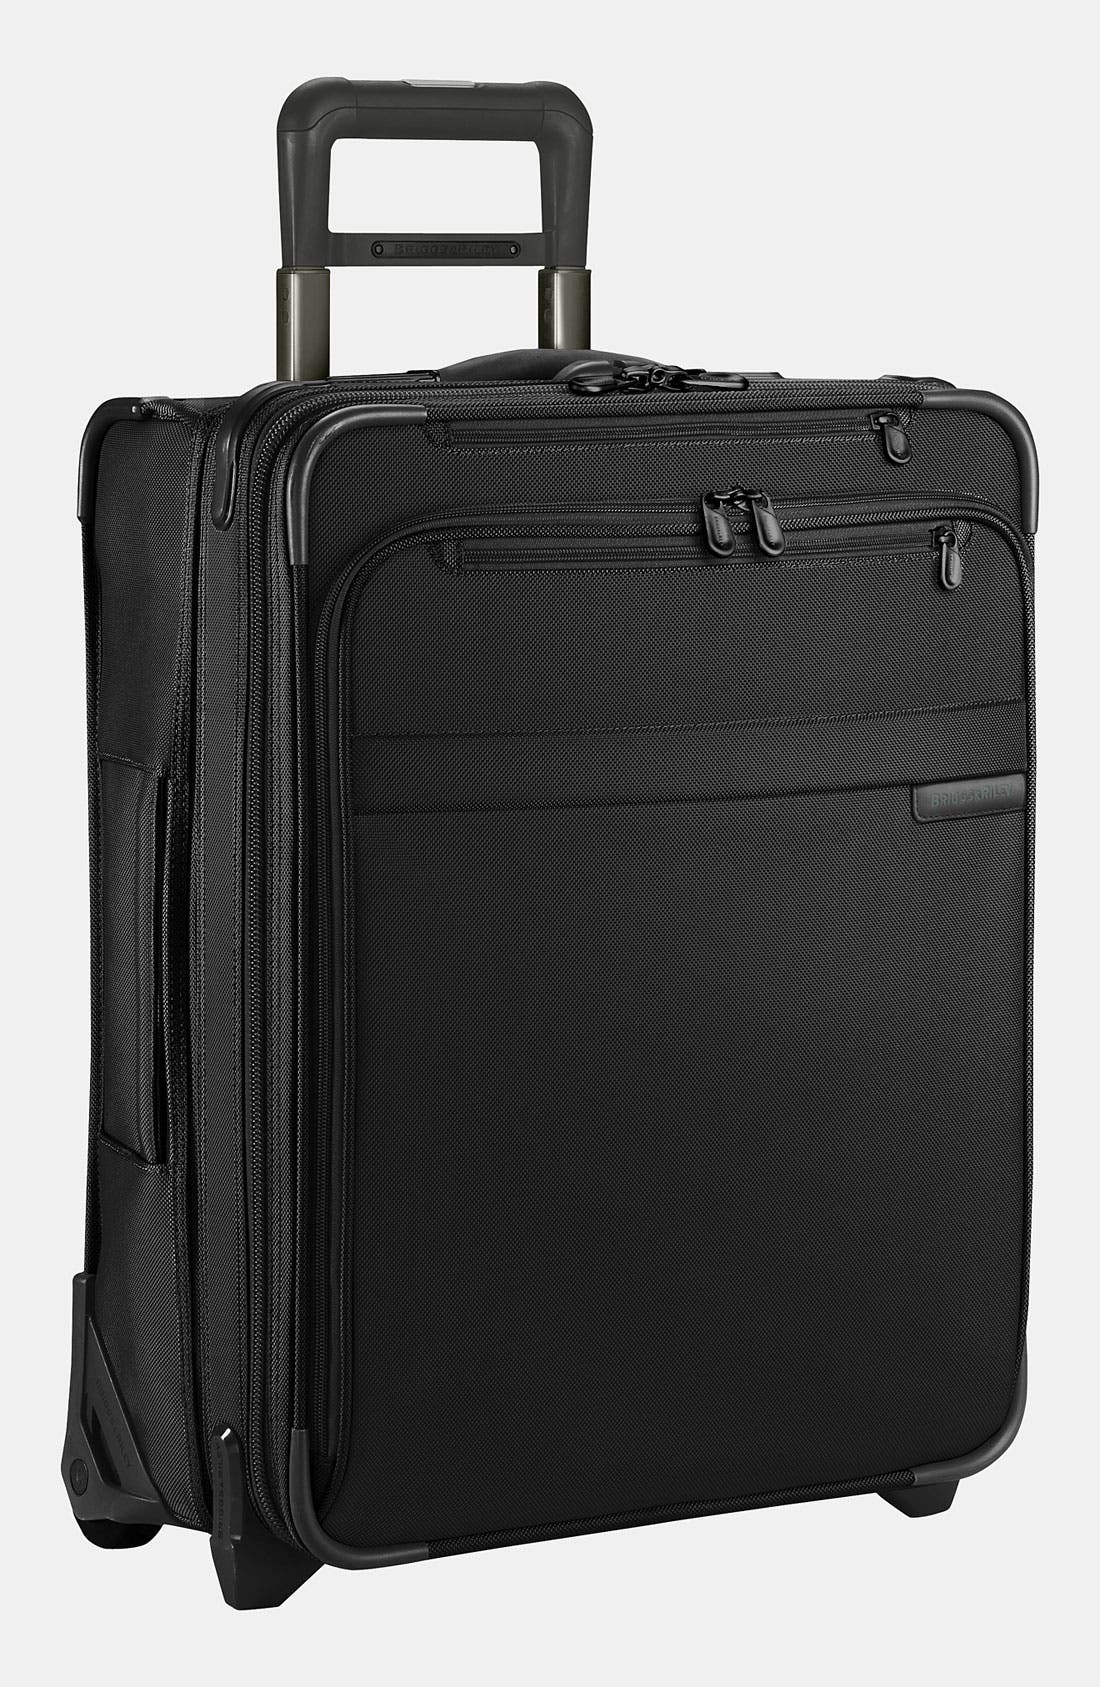 BRIGGS & RILEY Baseline International Expandable Rolling Carry-On